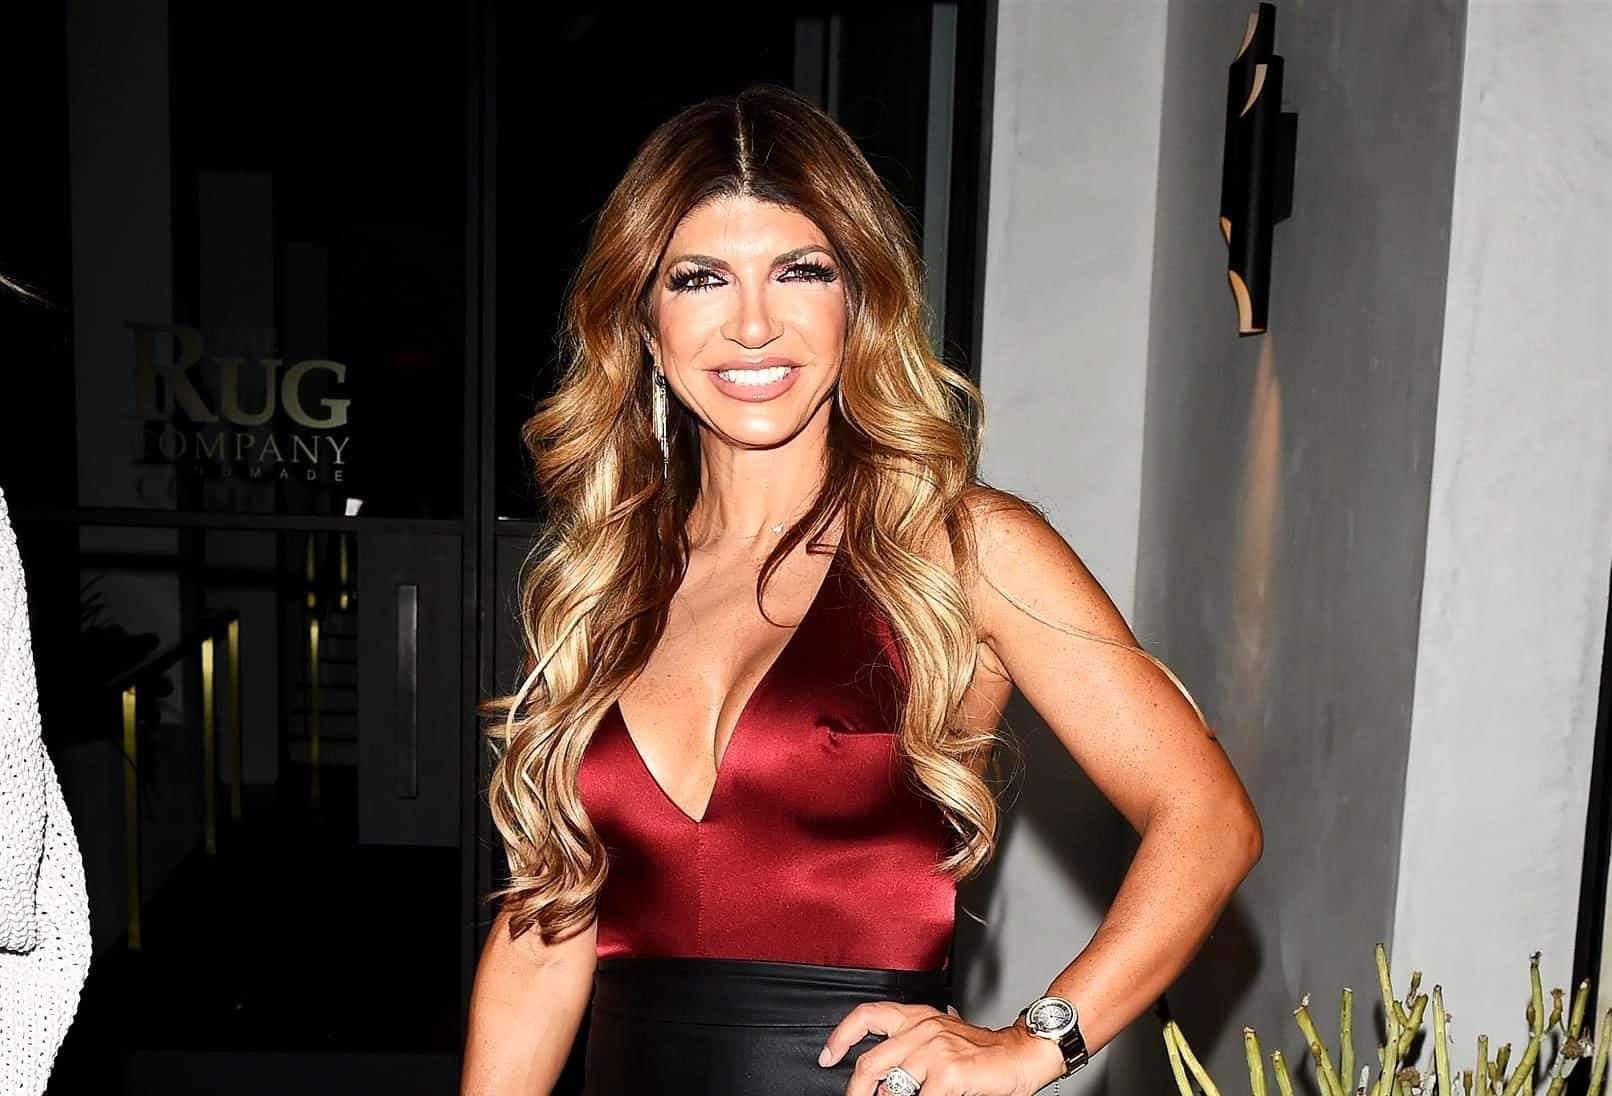 PHOTOS: RHONJ's Teresa Giudice Caught Holding Hands with 26-Yr-Old boyfriend